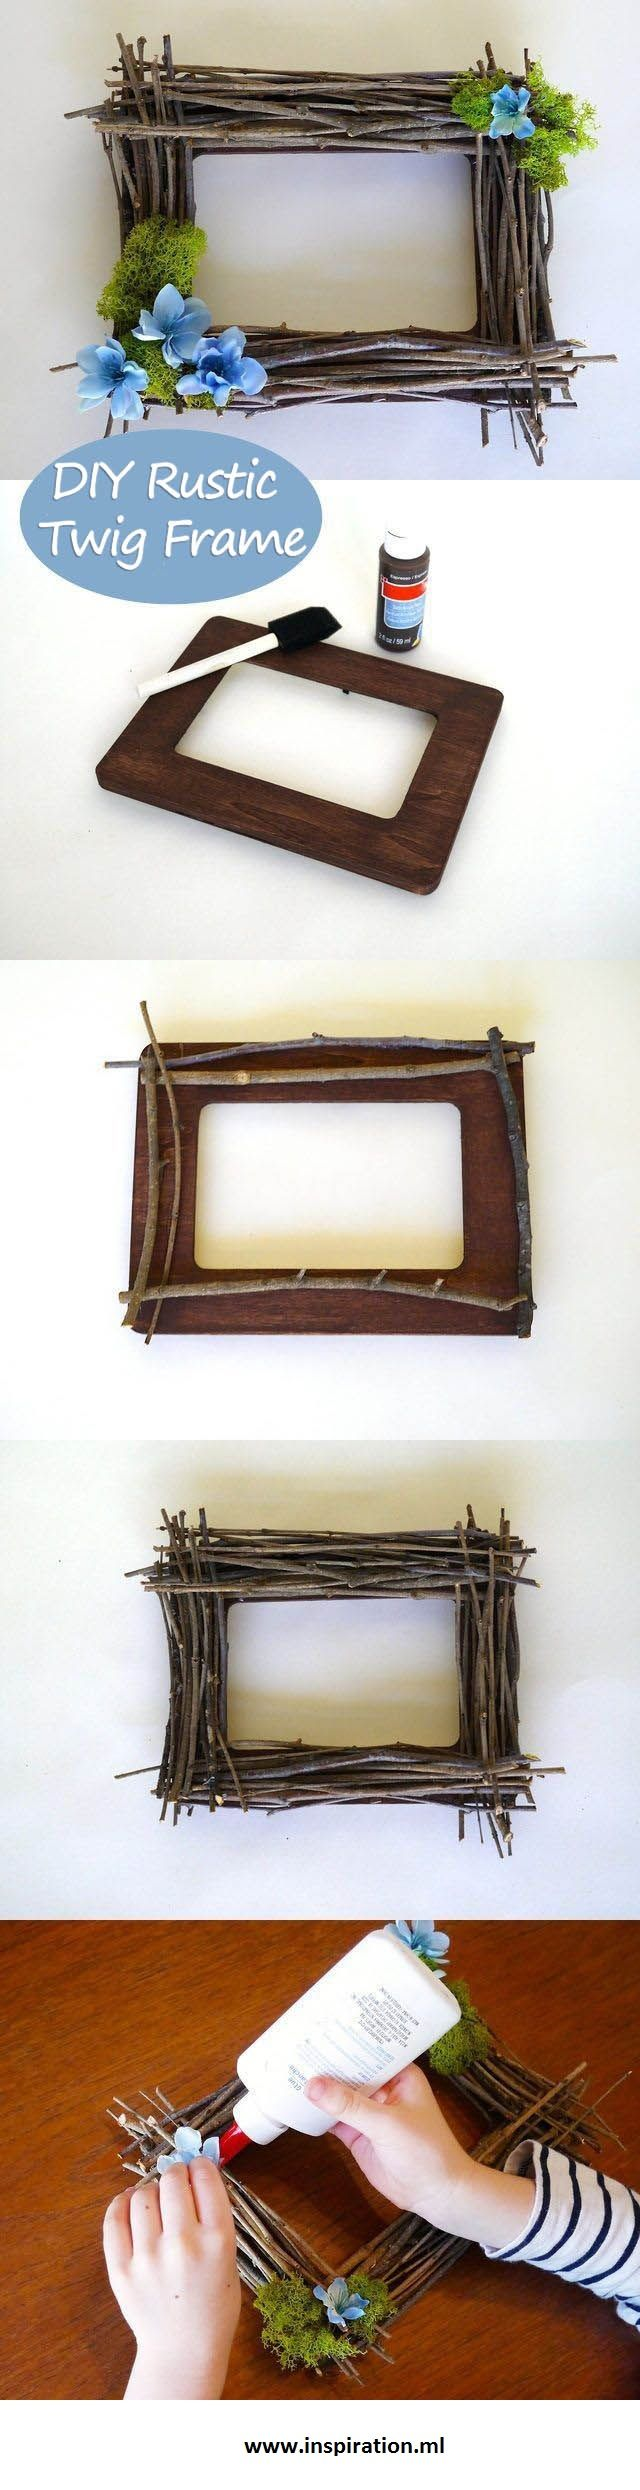 How to Make DIY Rustic Twig Frame - Tutorial